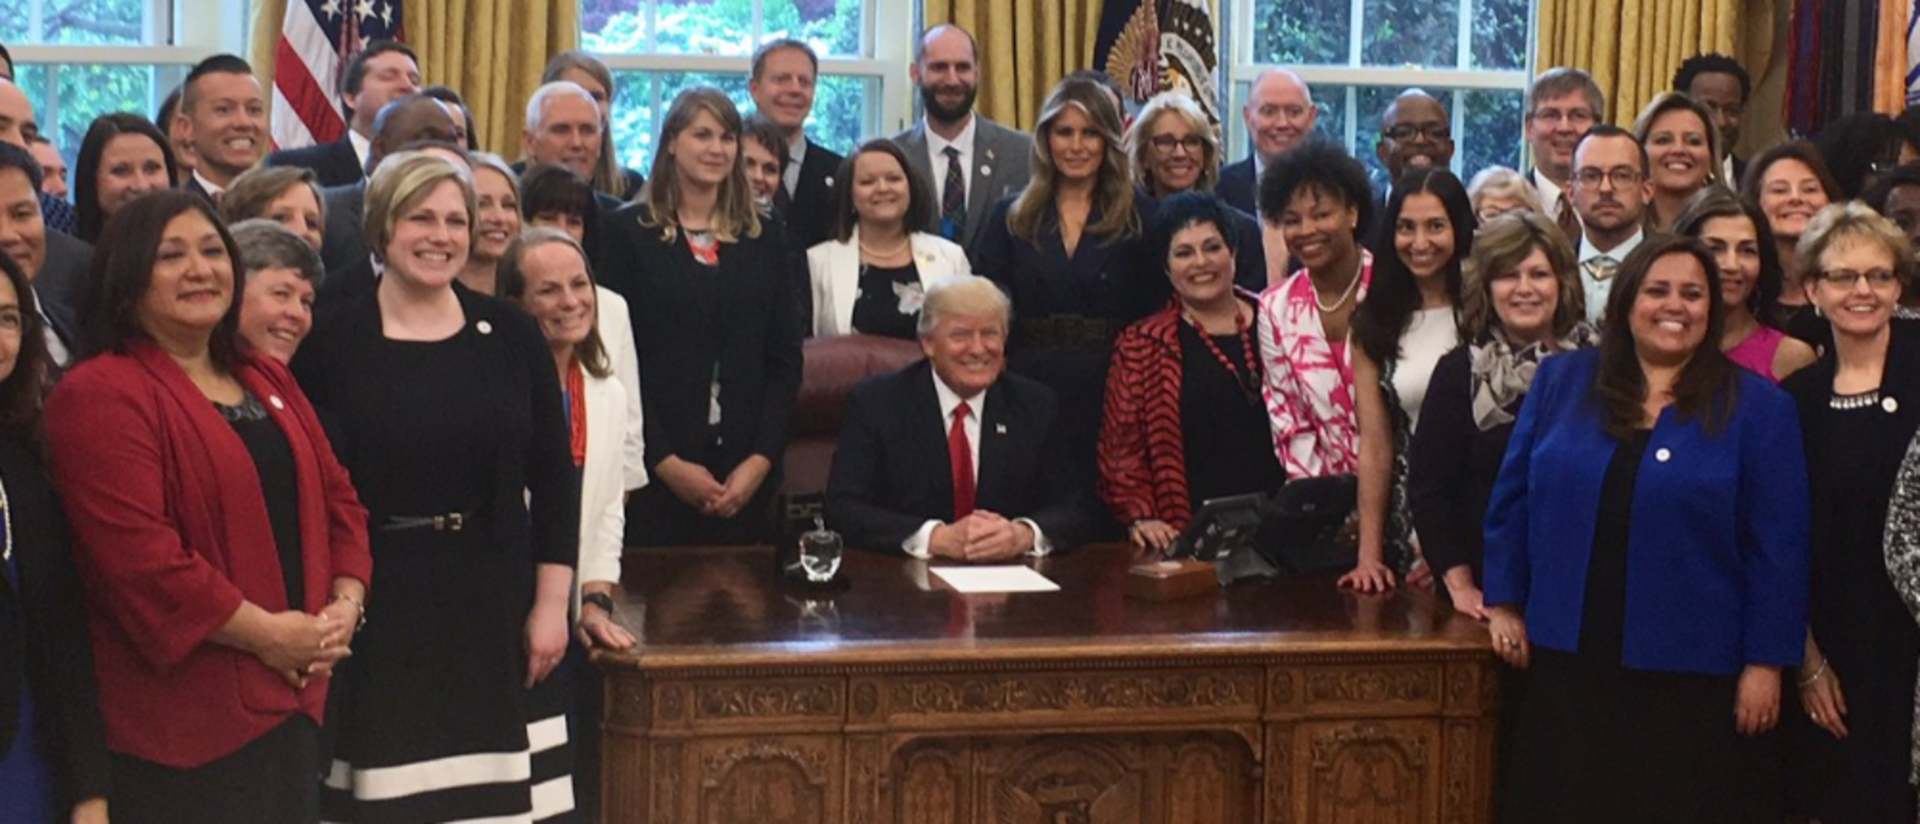 Chris Gleason and other state Teacher of the Year winners in the Oval Office.